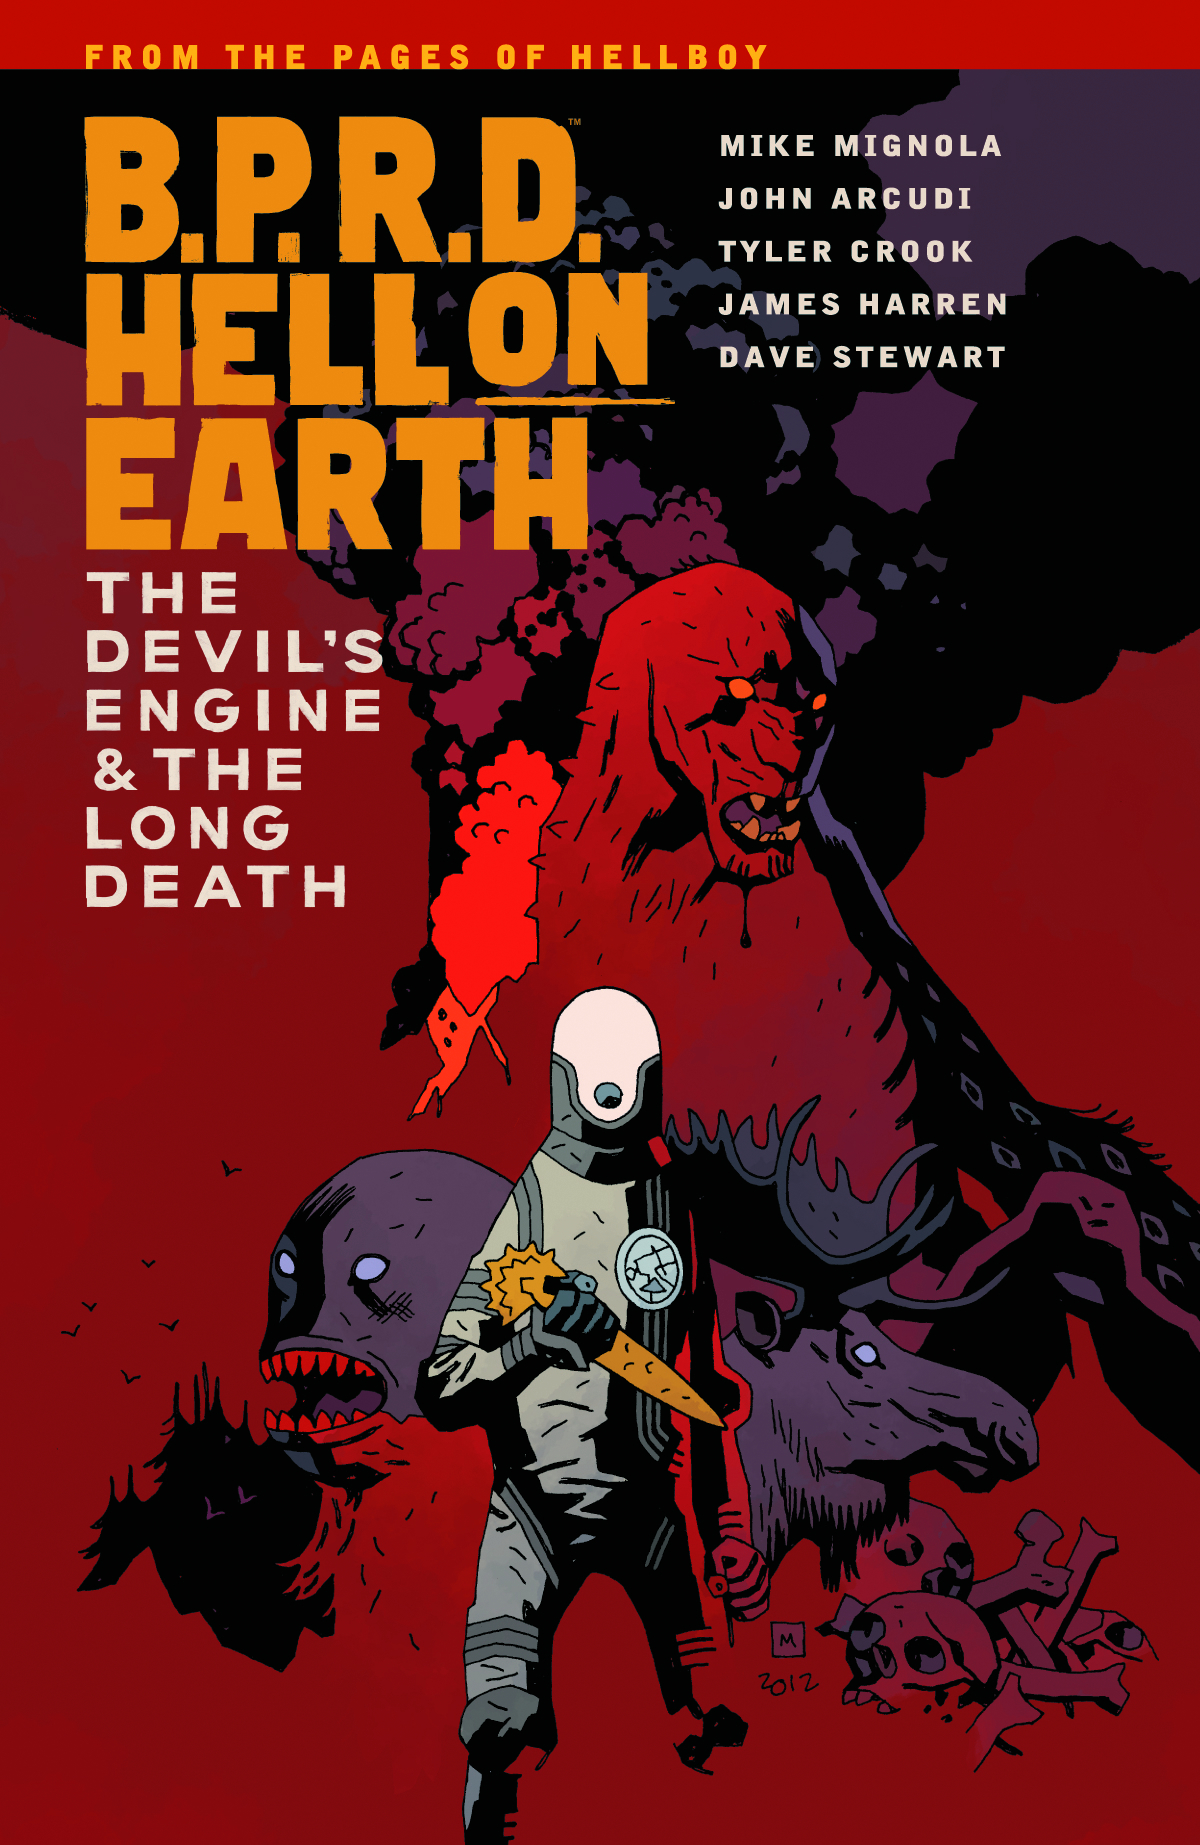 BPRD HELL ON EARTH TP VOL 04 DEVIL ENGINE & LONG DEATH